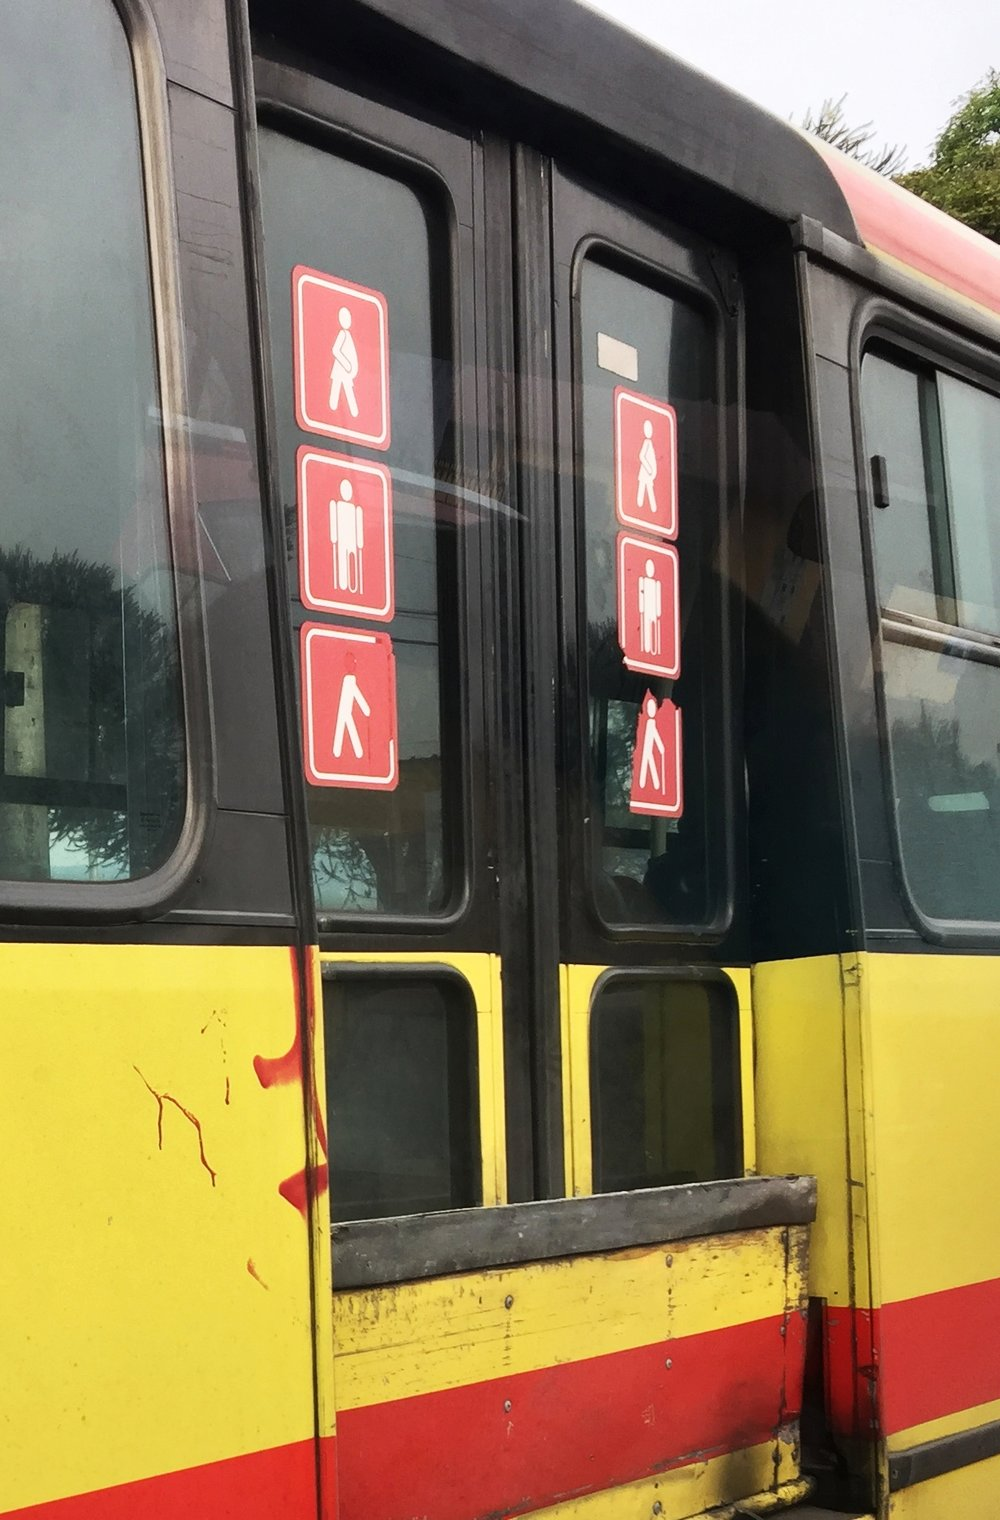 bus, quito, ecuador - Riders on this bus must relinquish their seats to pregnant women, the infirm, and to those without heads.